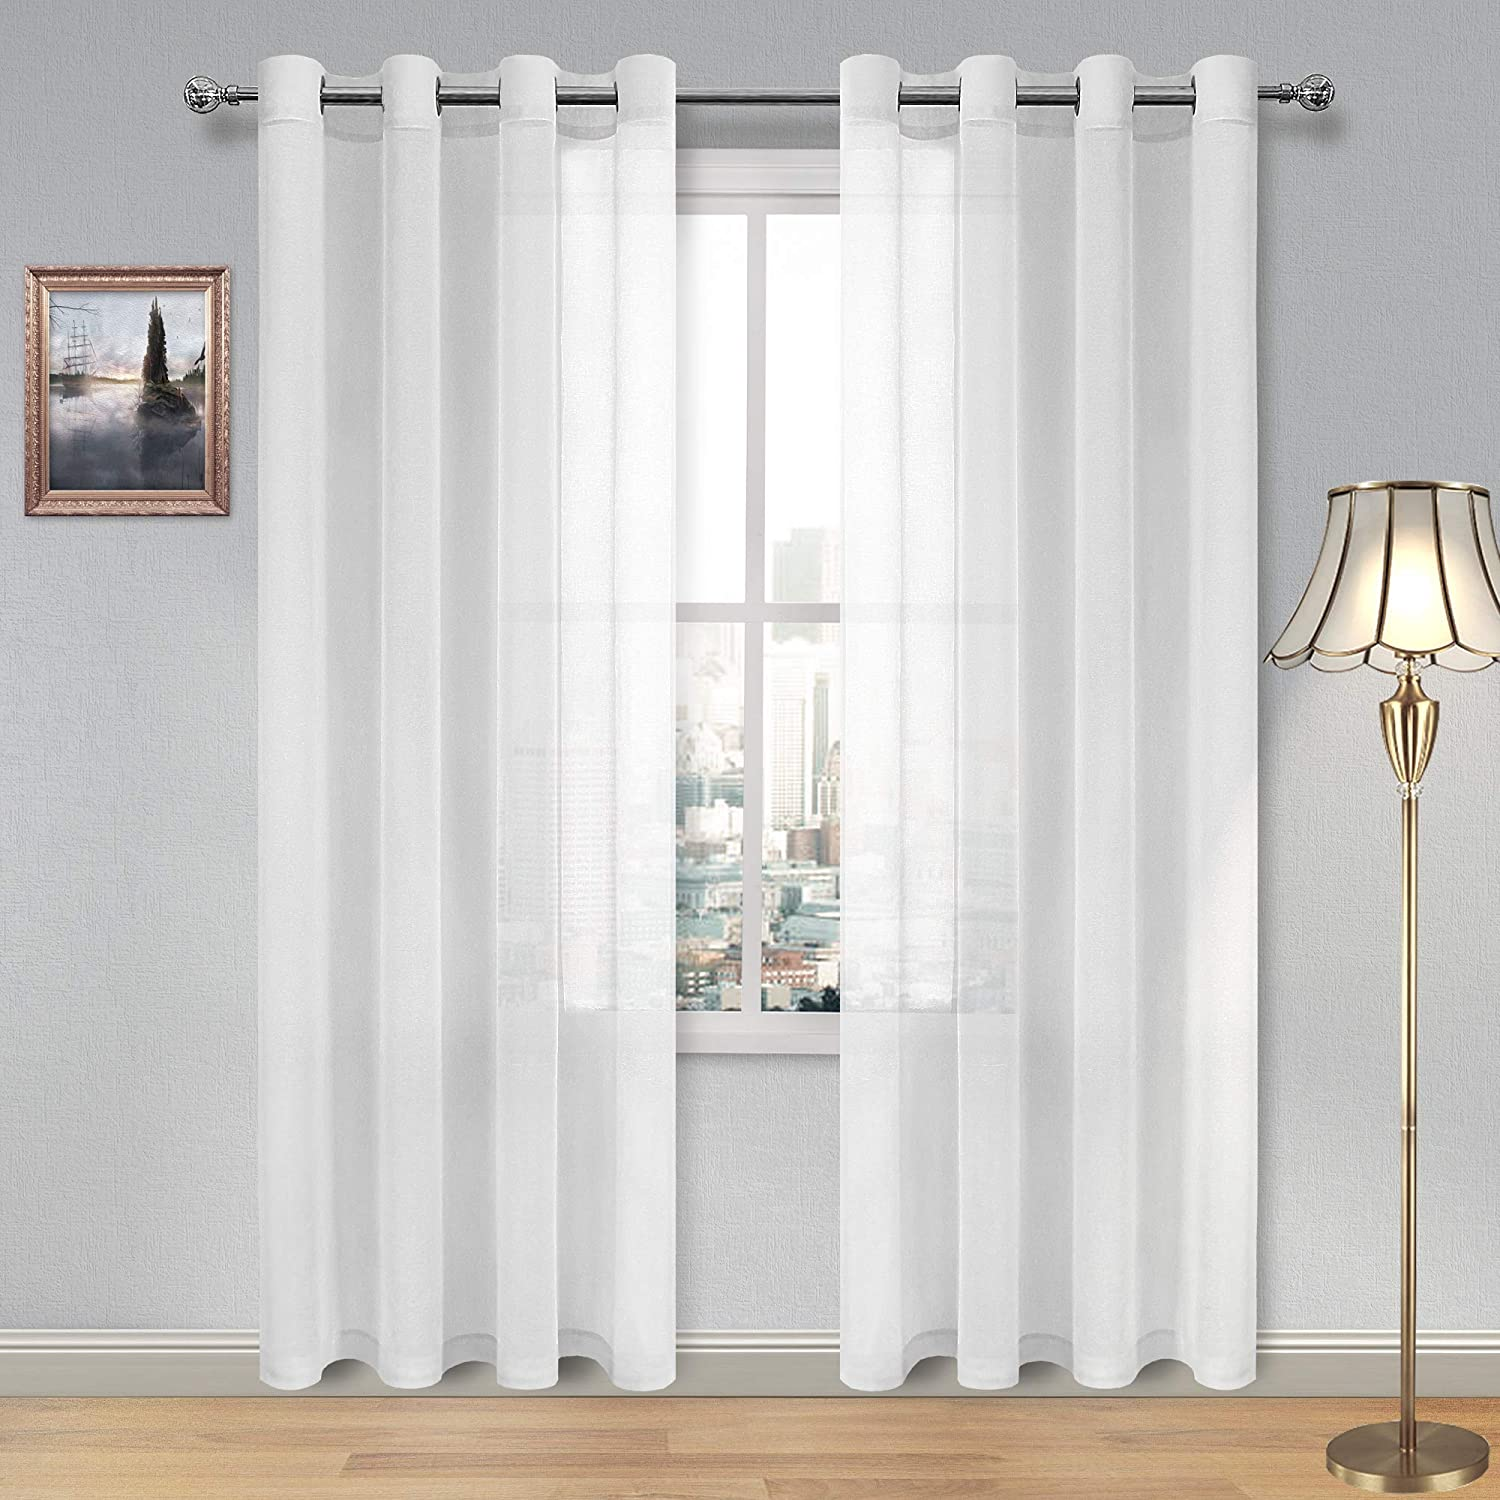 Amazon.com: DWCN White Sheer Curtains Linen Look Semi Transparent